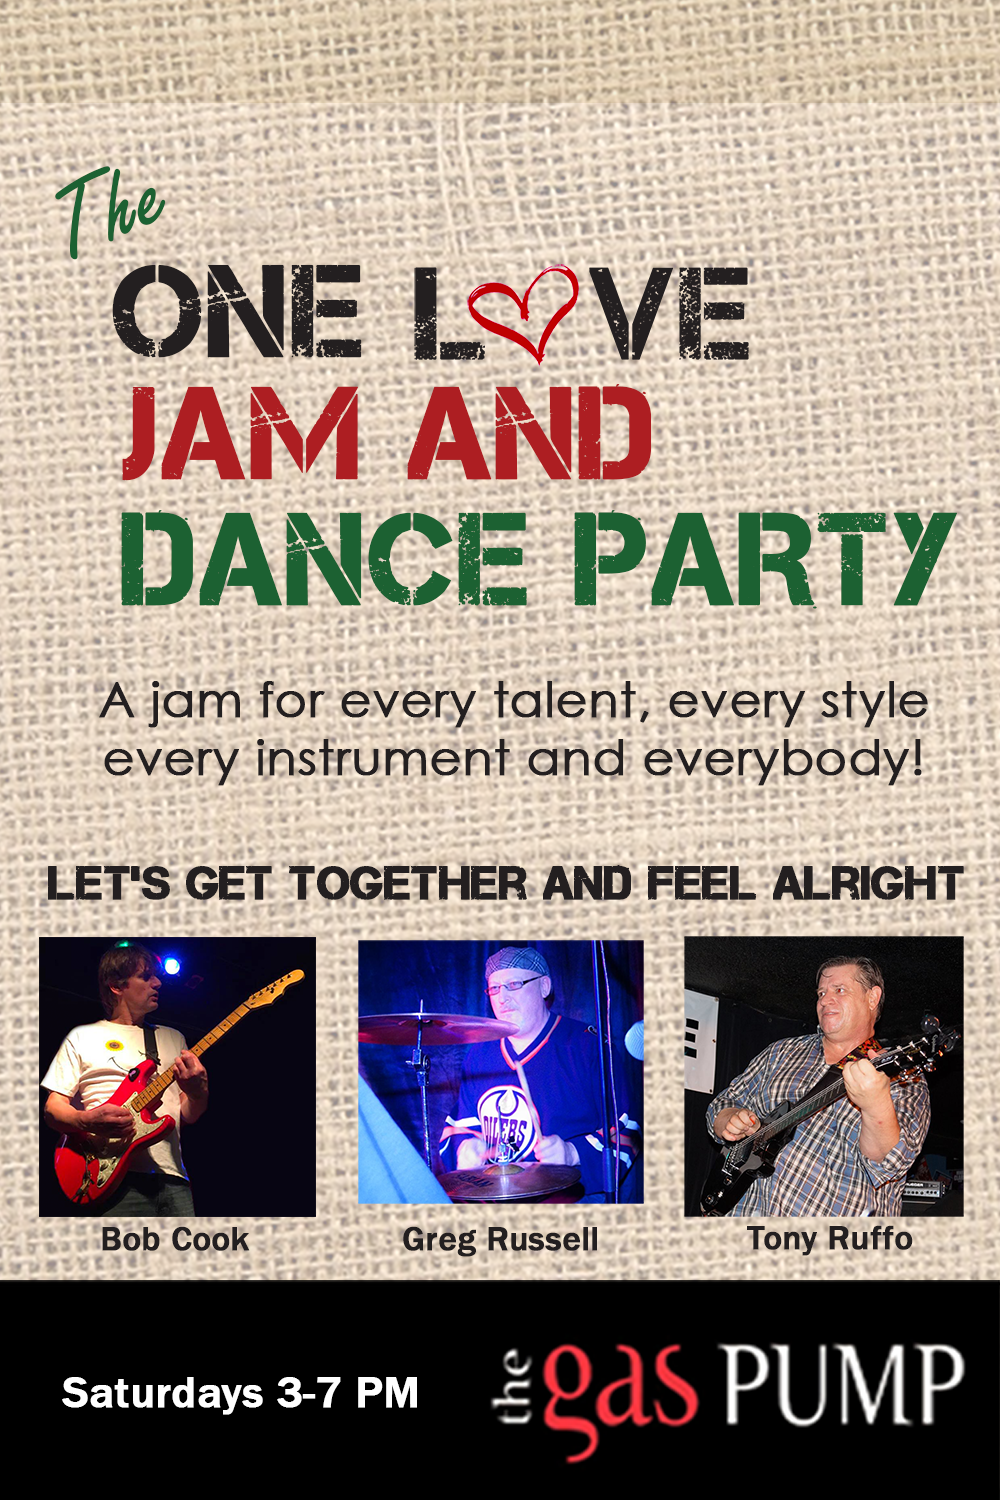 The One Love Jam and Dance Party